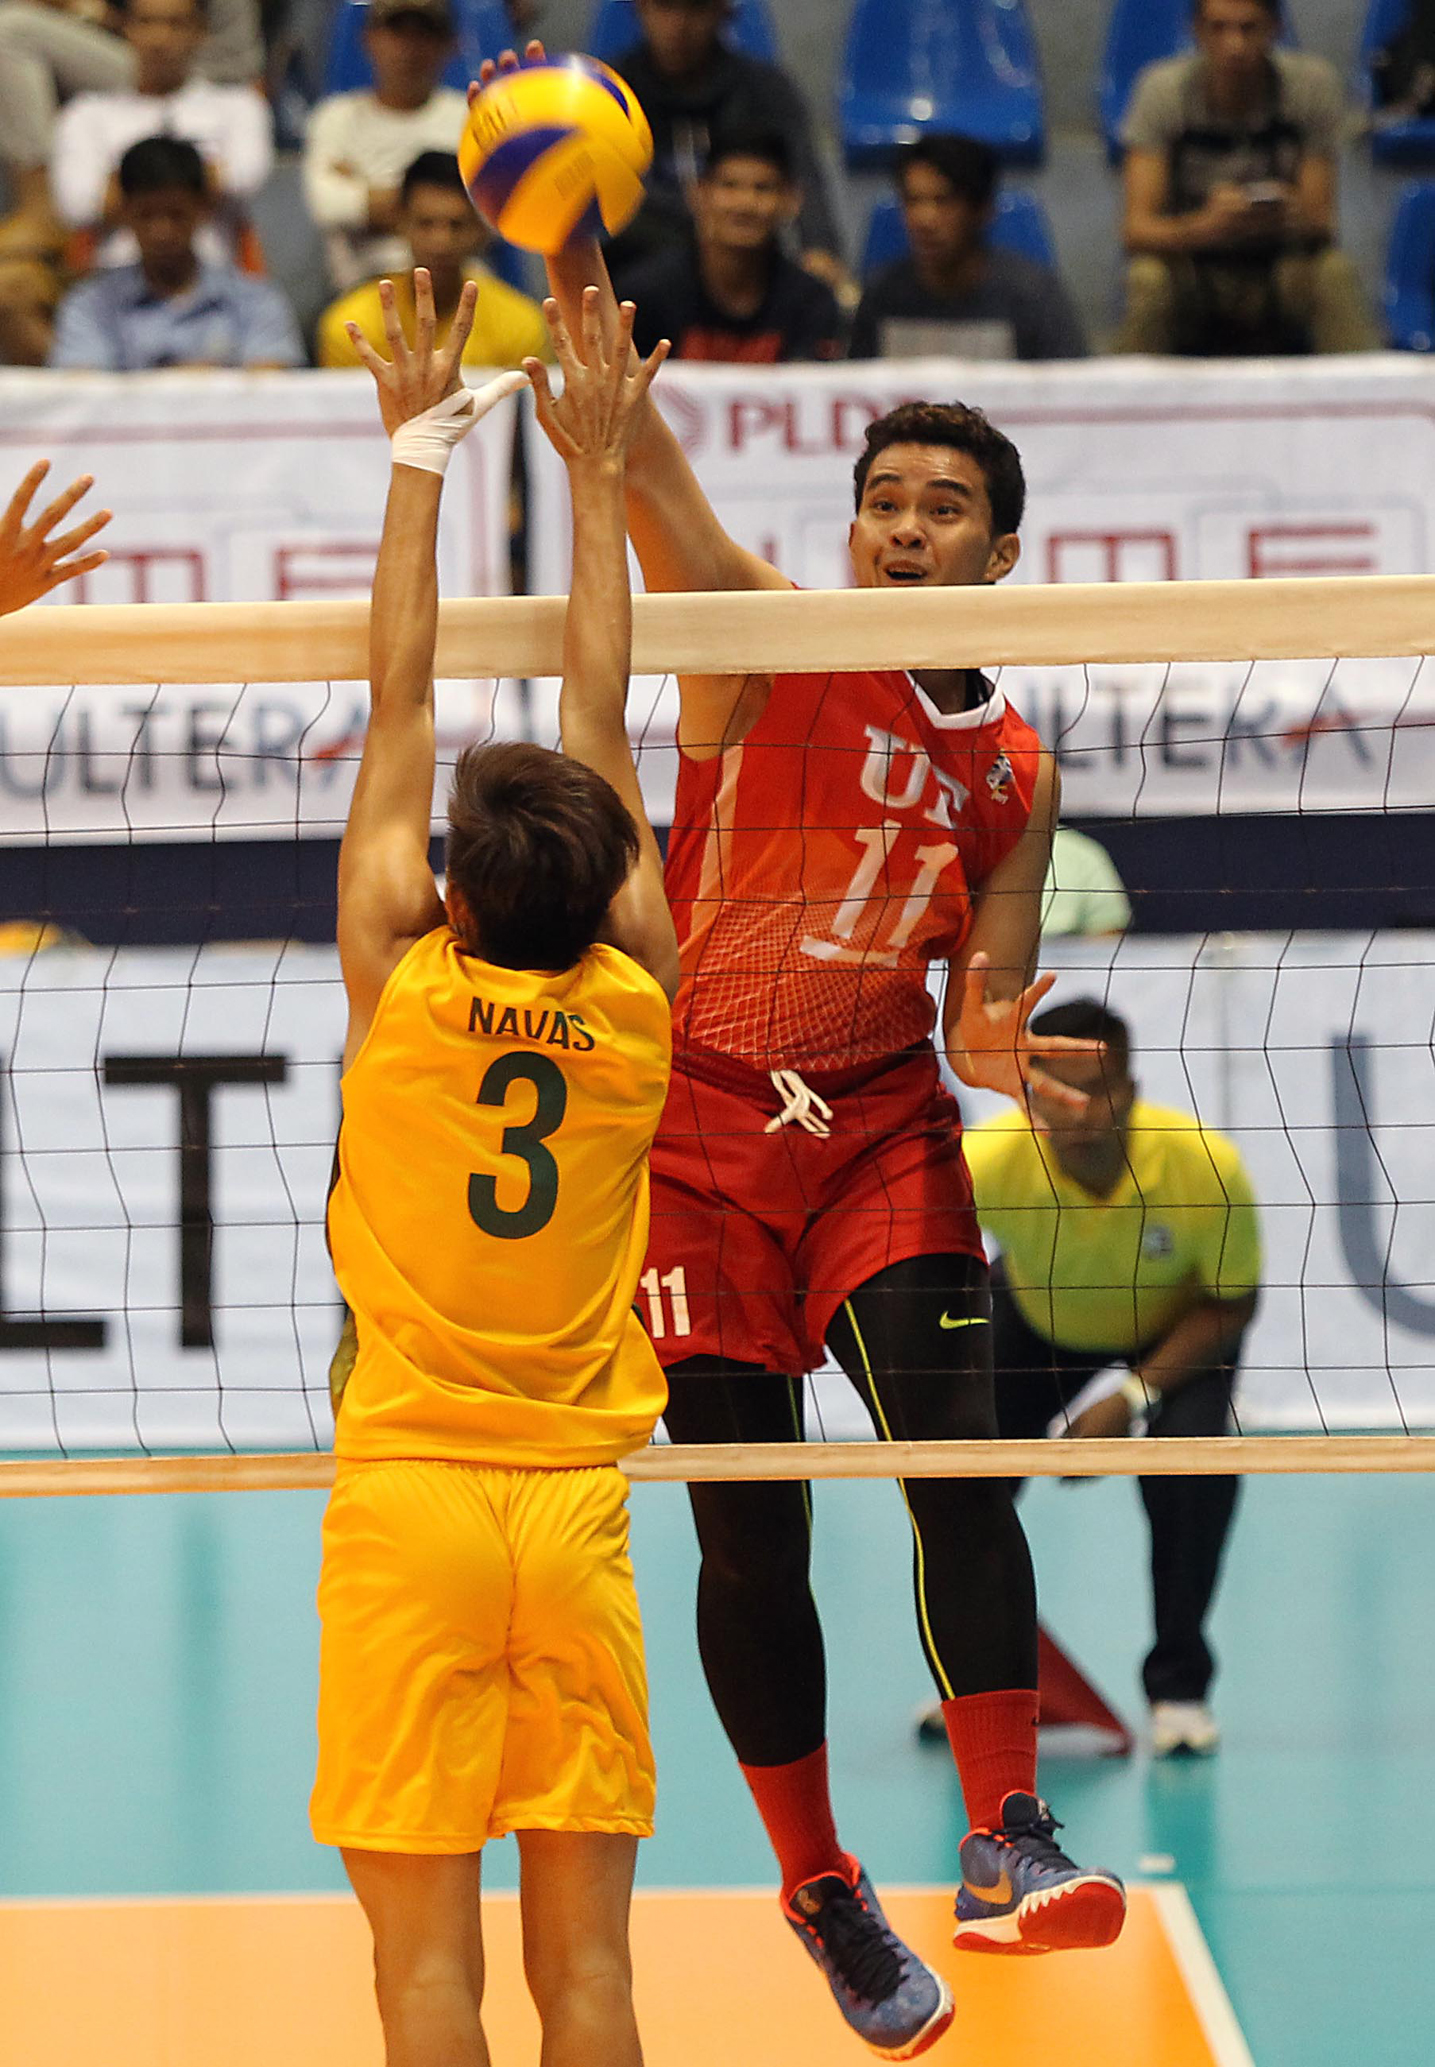 UE's Edward Camposano scores on a power tip against FEU's Jesser Navas during their Spikers' Turf clash at The Arena.